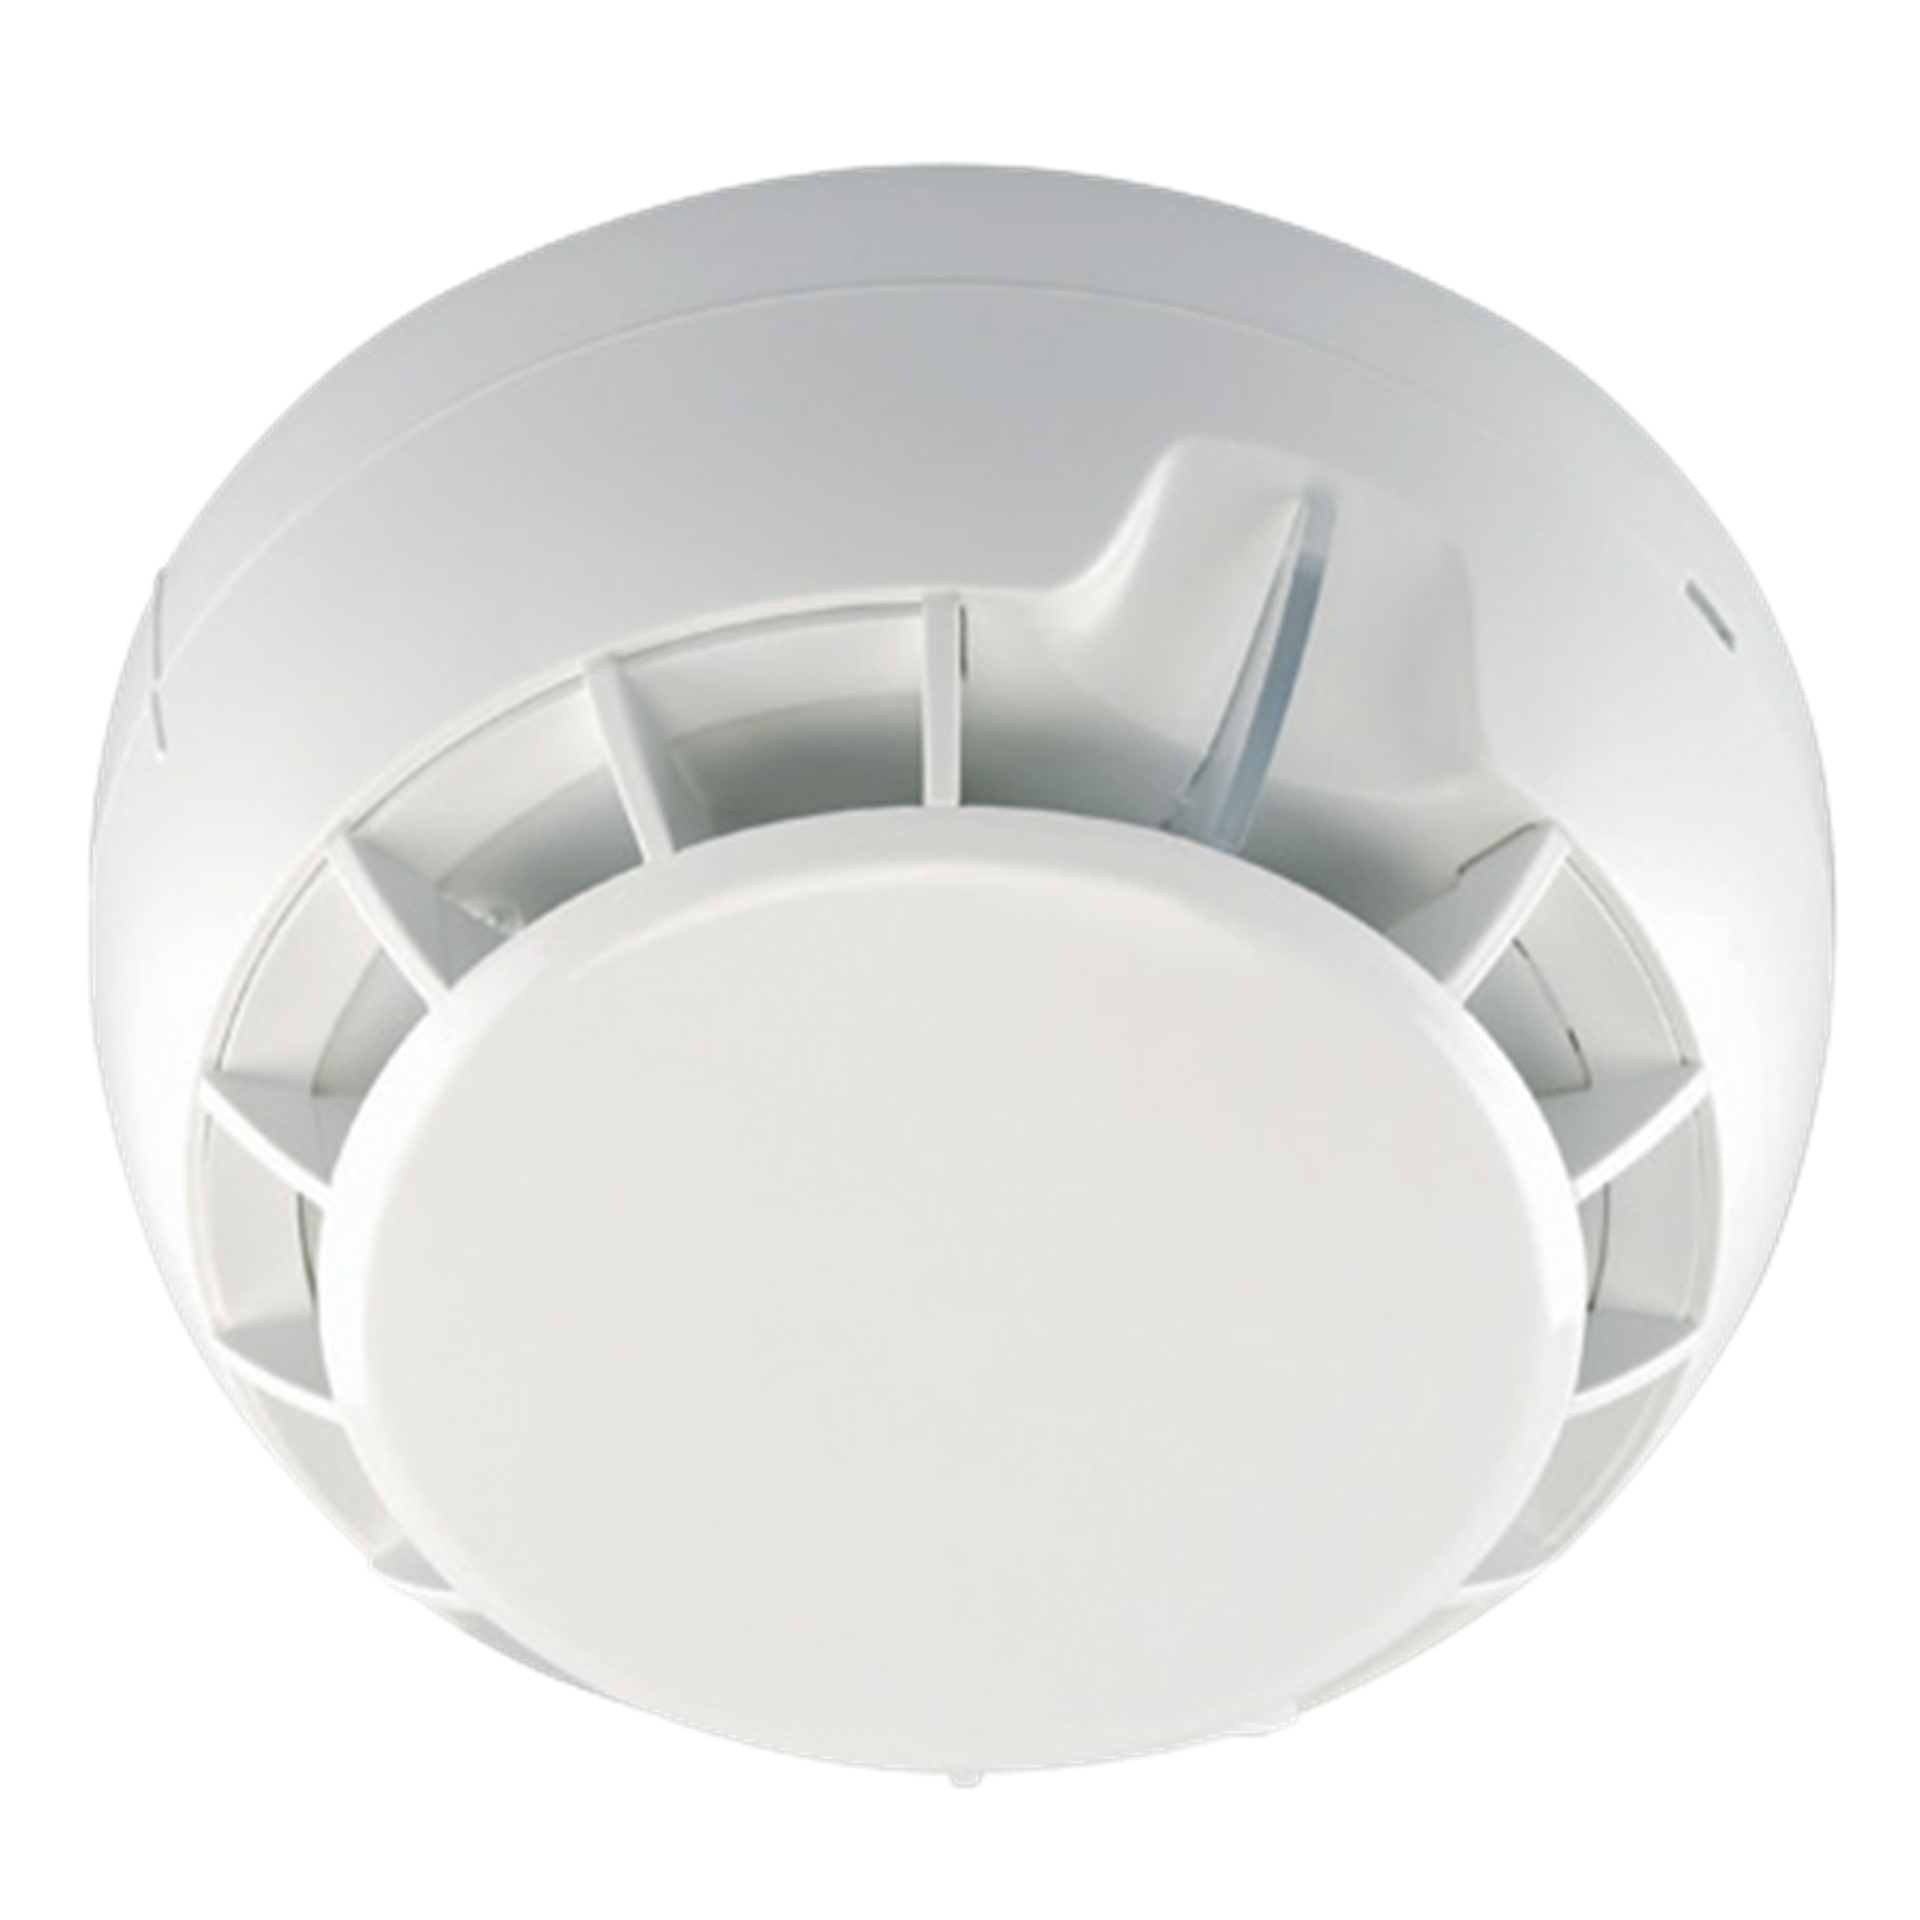 ESP FHD-2 Fixed Temperature Heat Detector with Diode base